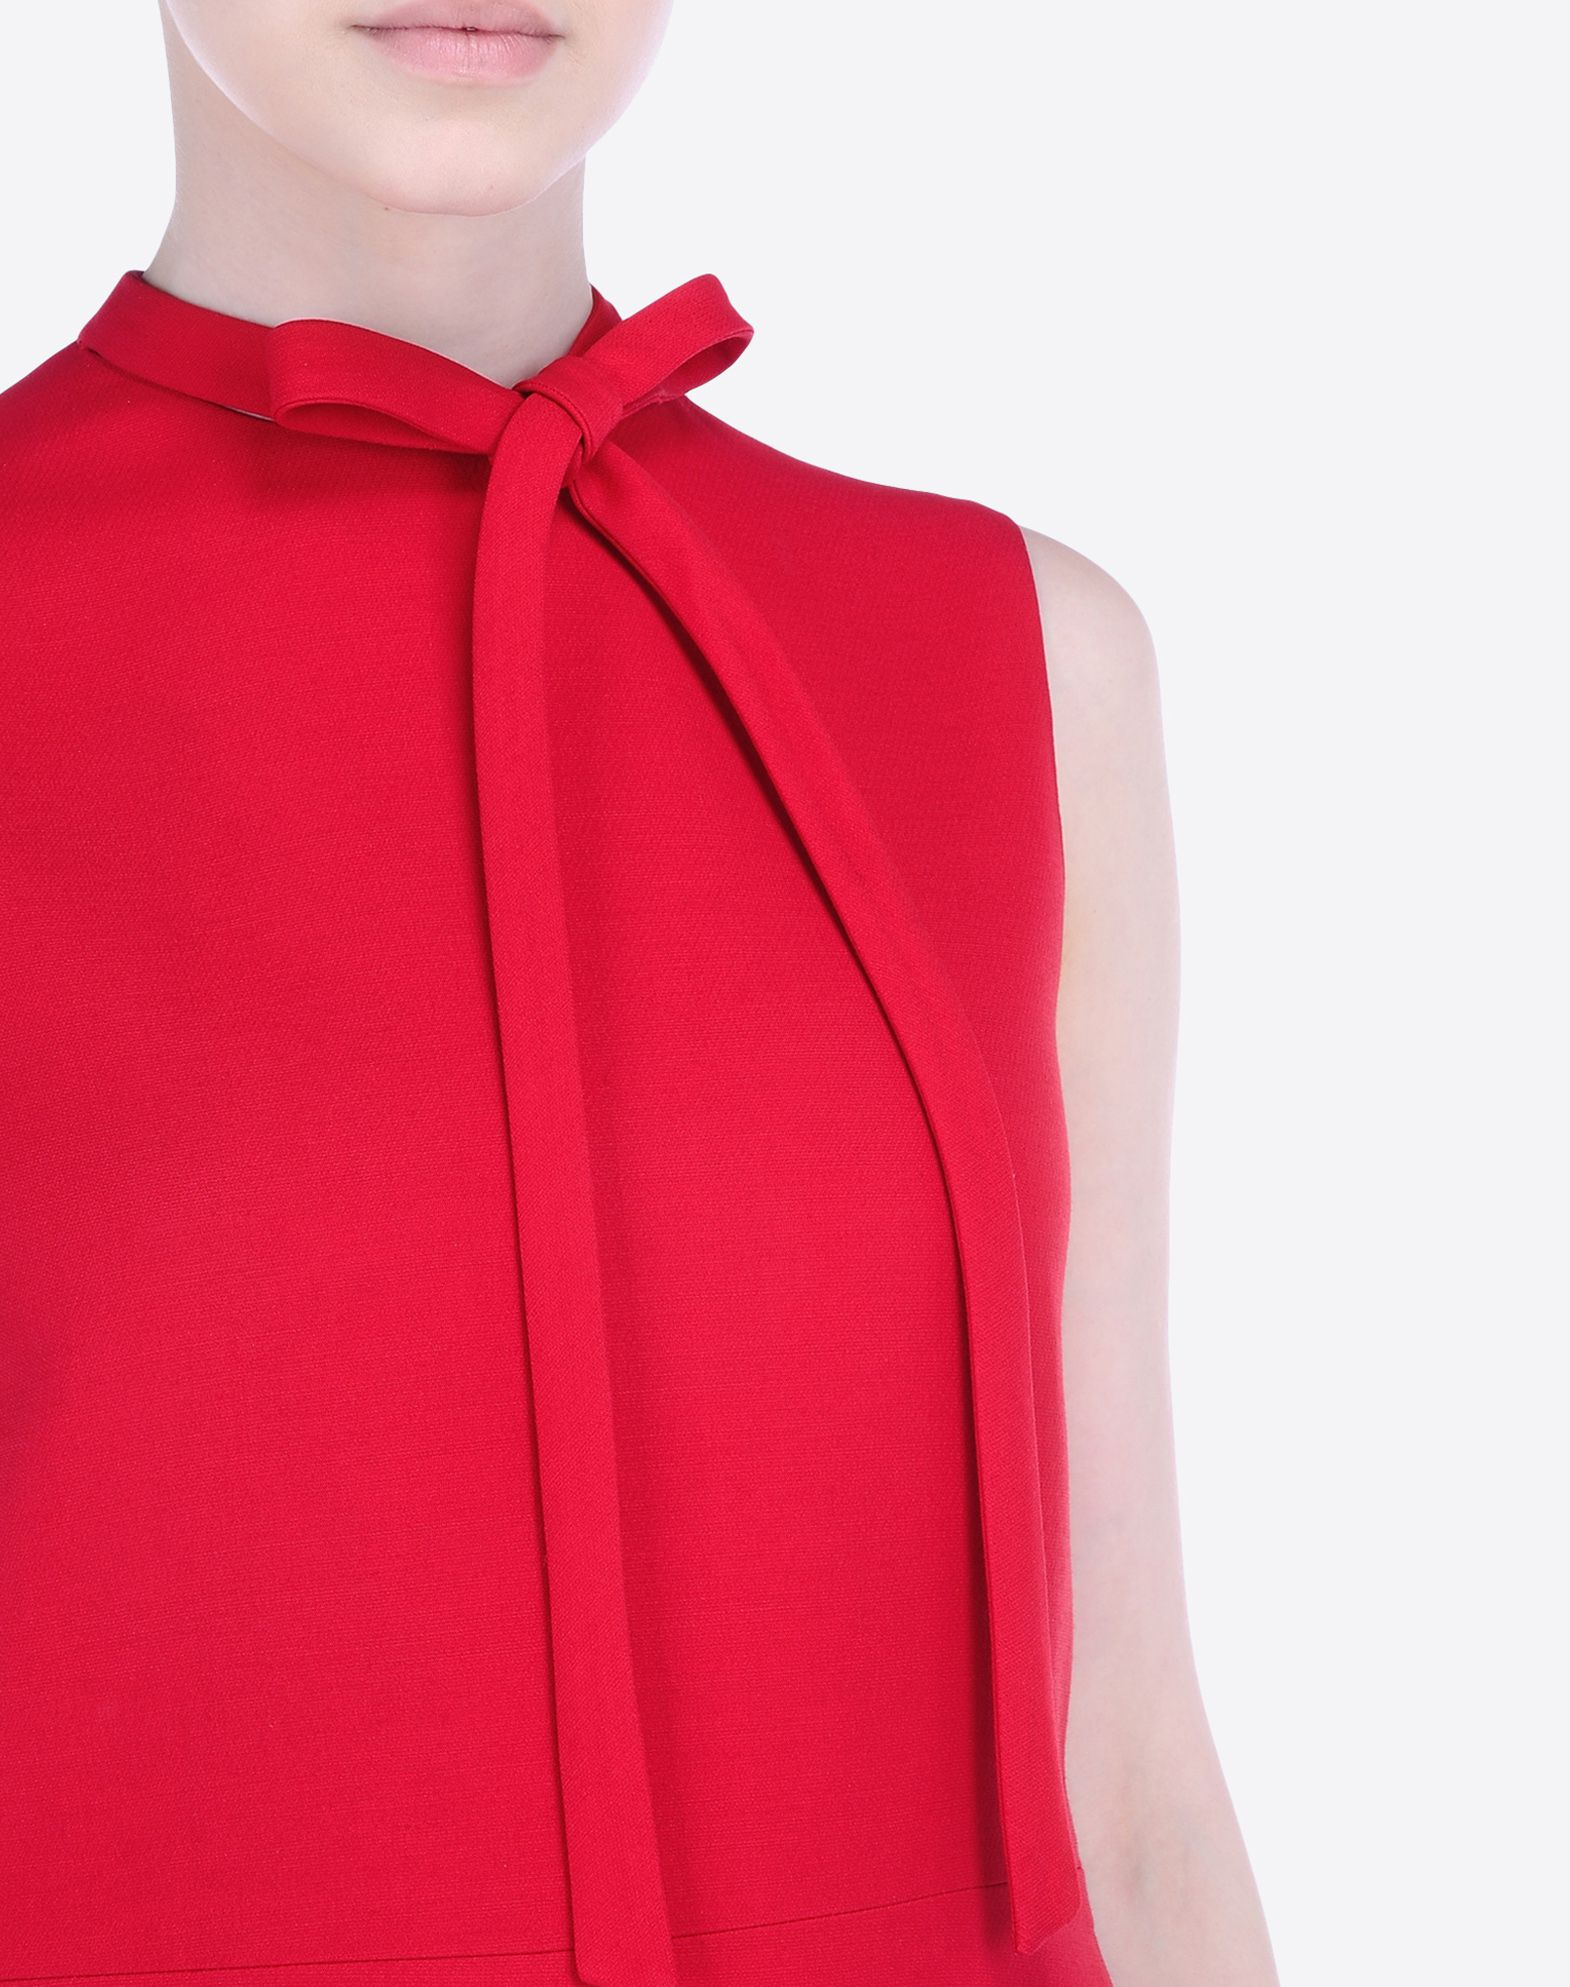 VALENTINO Crêpe Solid color Bow collar Zip Two front pockets Lined interior Sleeveless  34425759qr